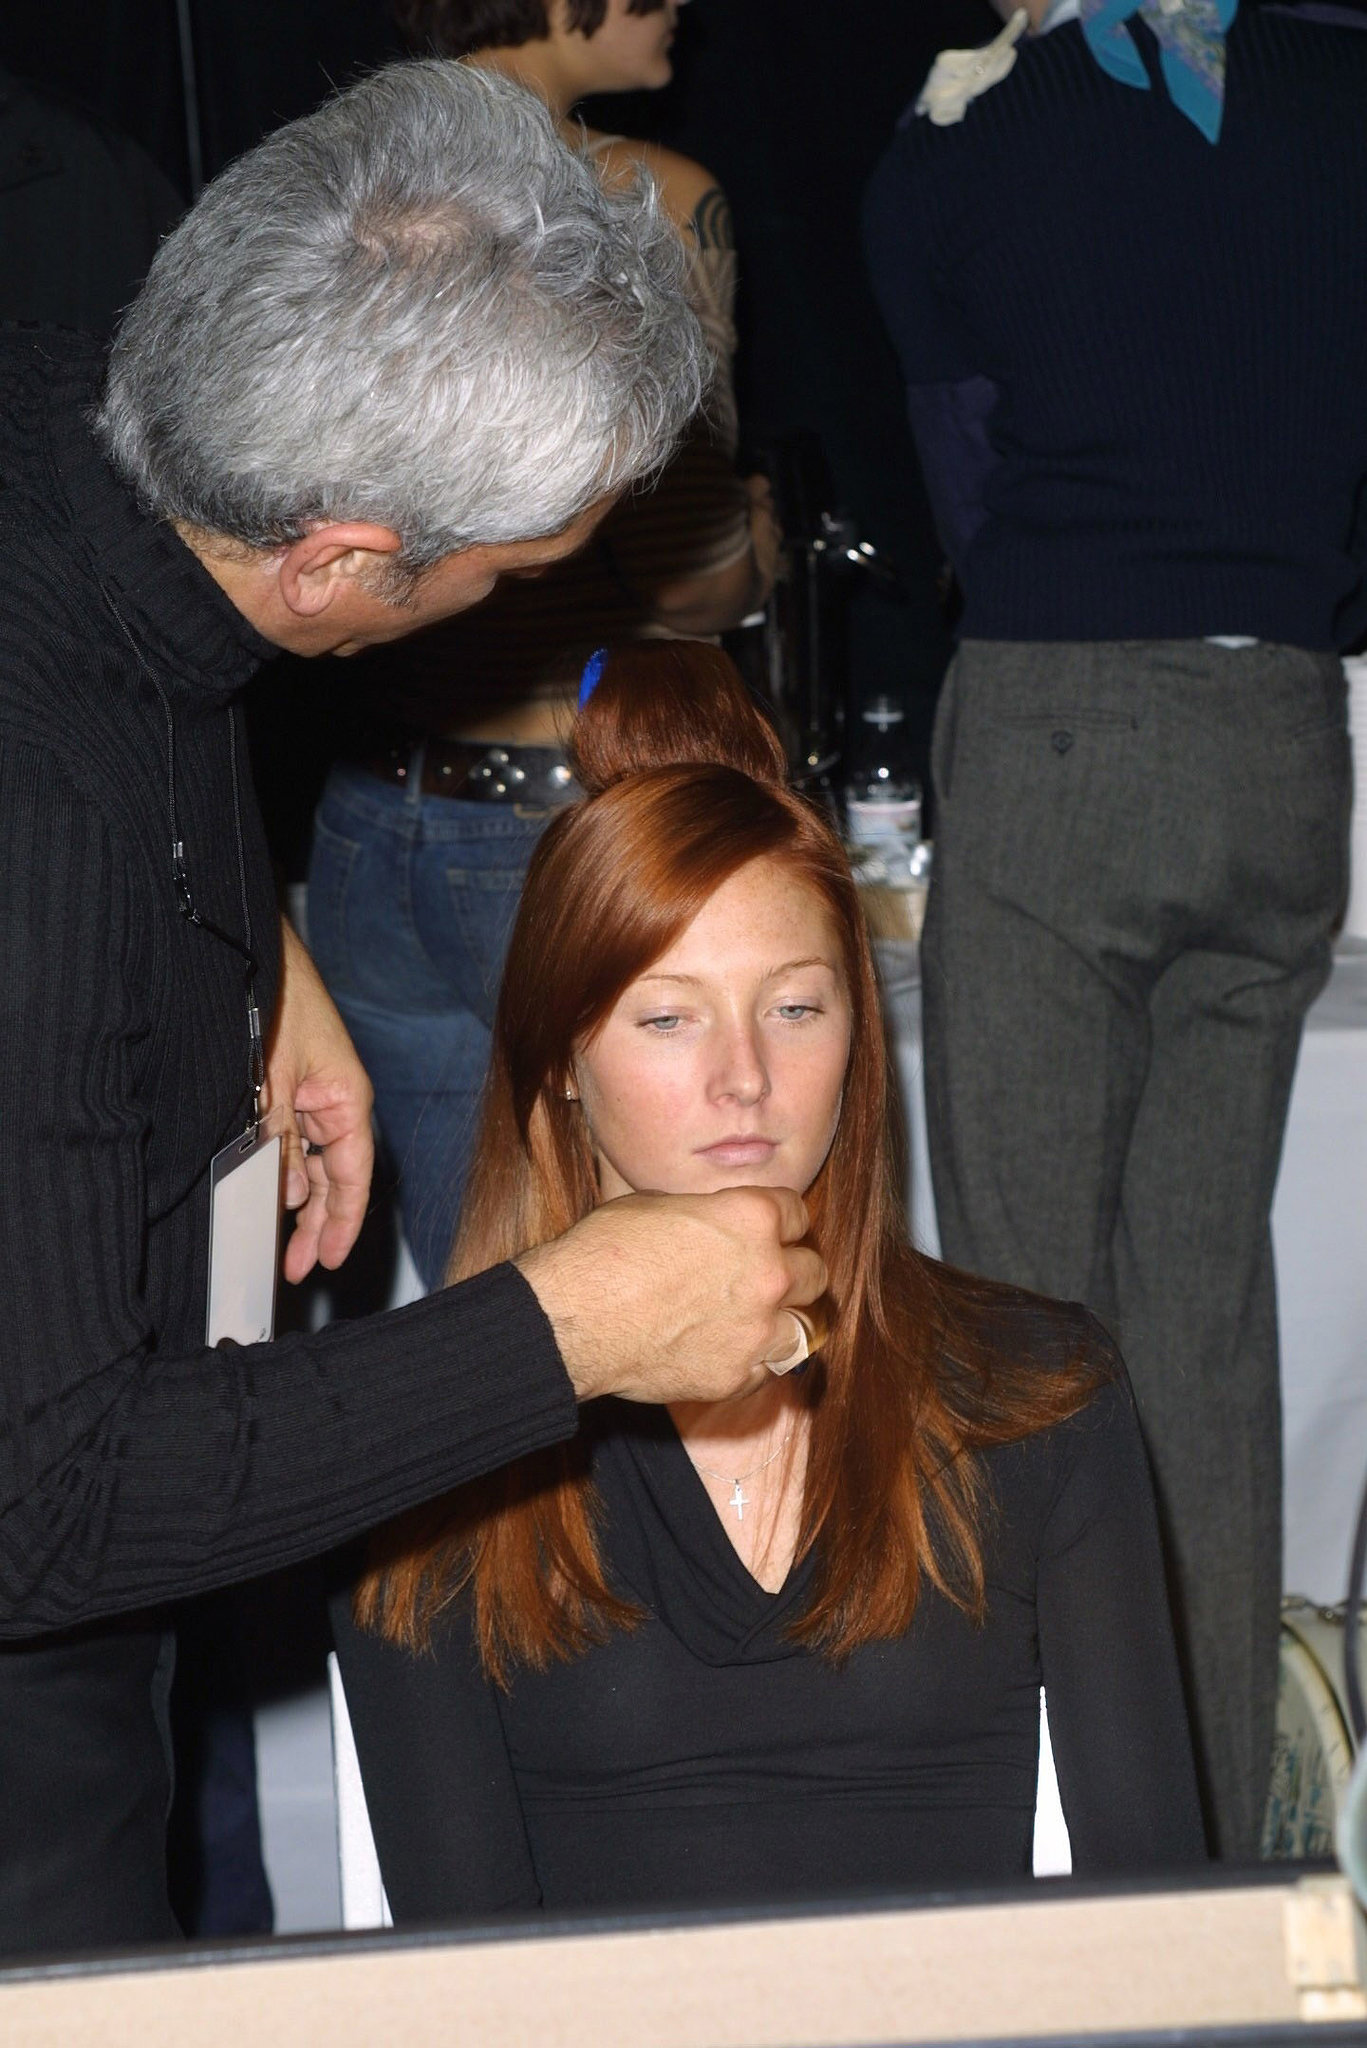 Maggie Rizer got a touch-up backstage before the 2011 show.